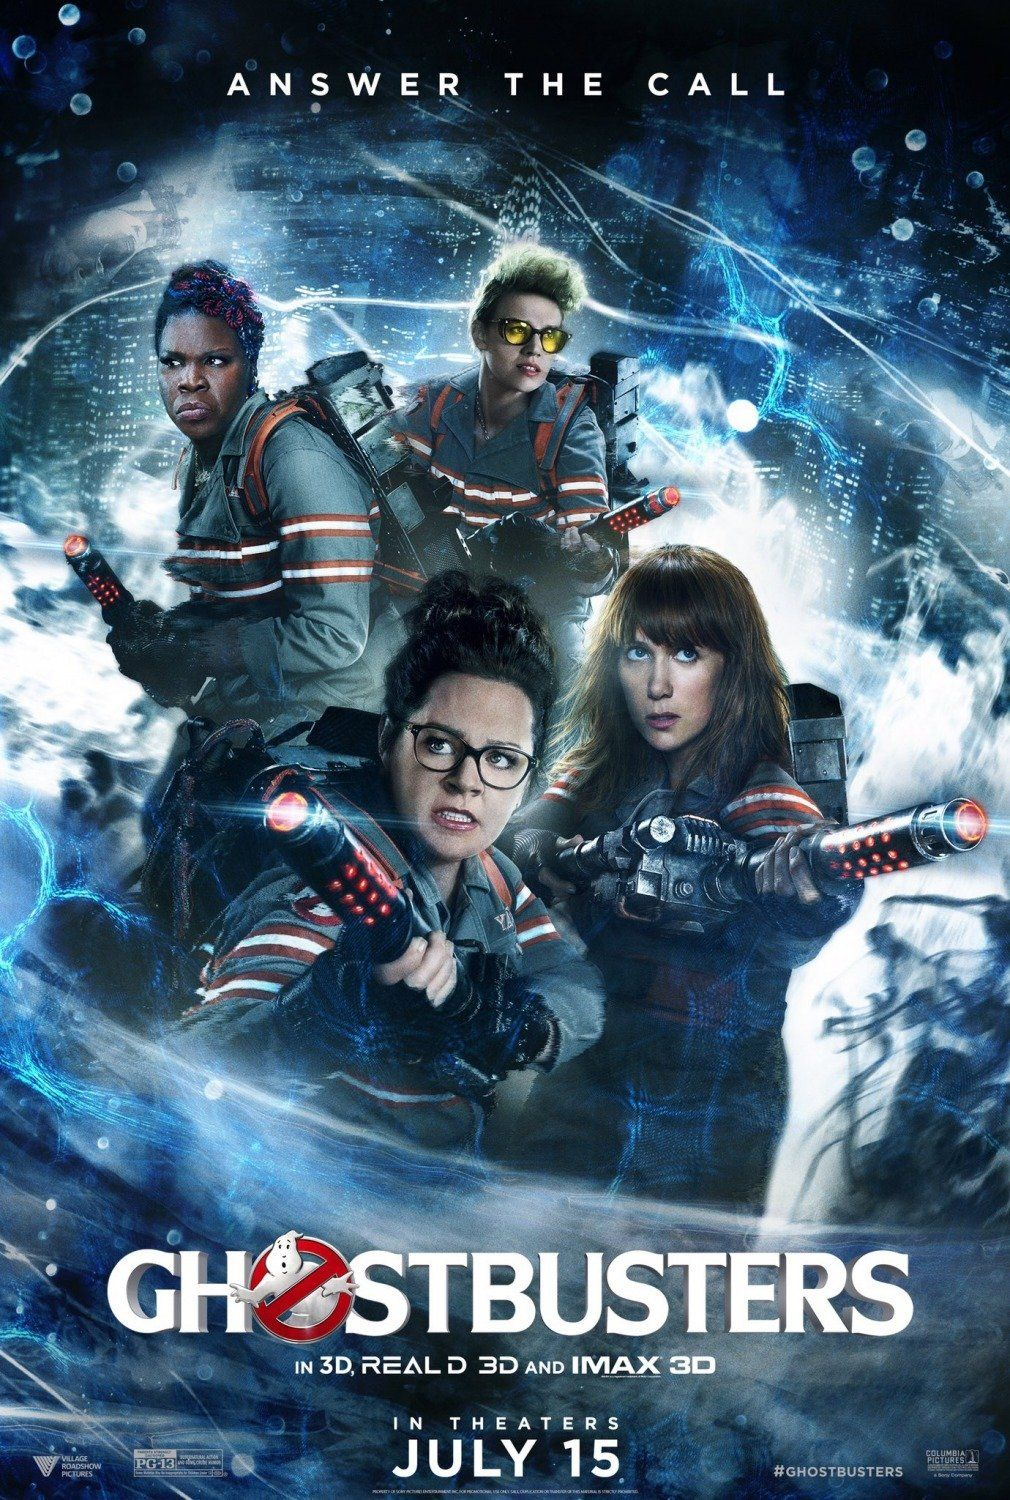 Ghostbusters (2016) Film Poster | Who you gonna call? | Pinterest ...